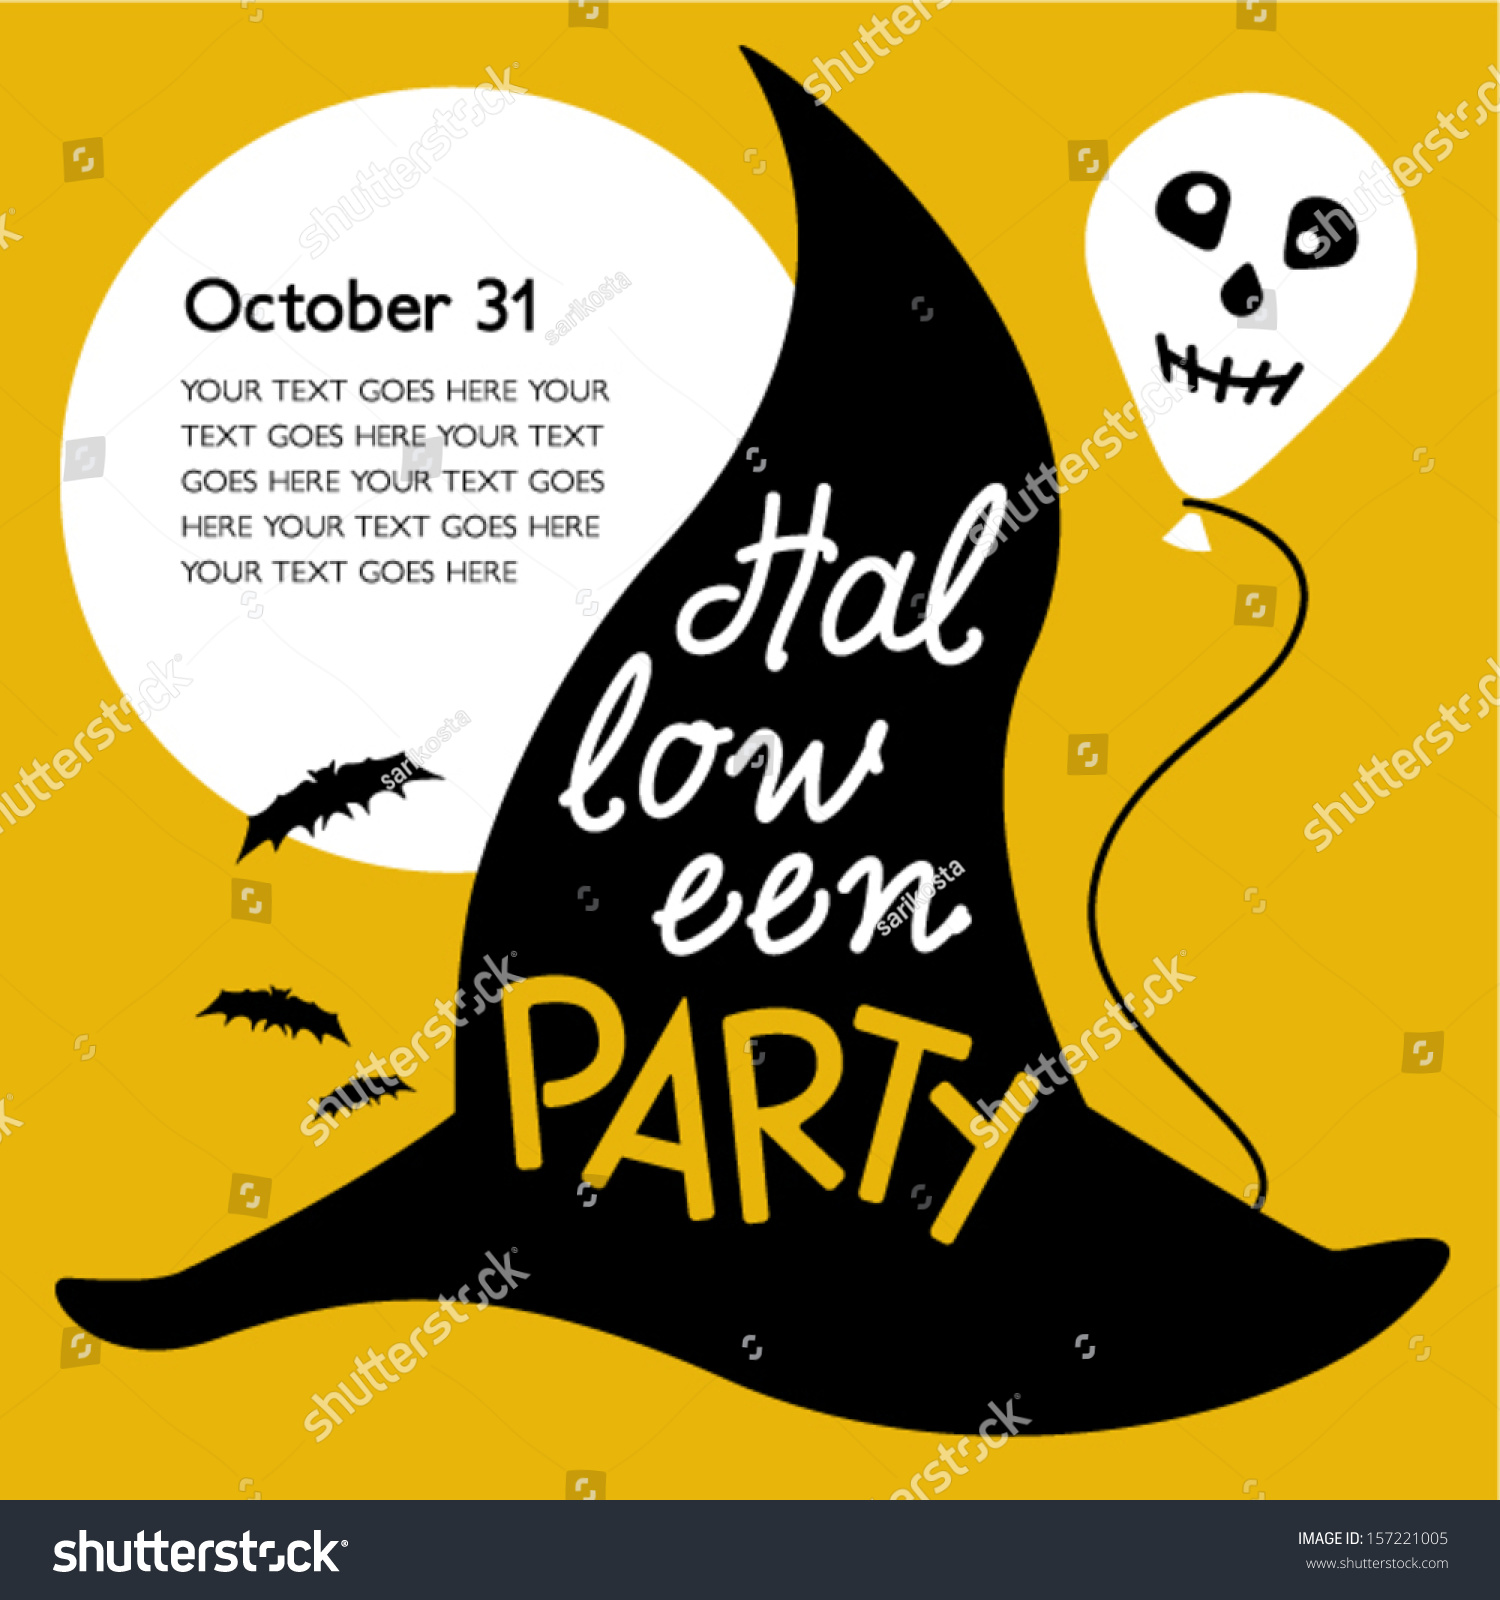 Halloween Party Invitation Card Stock Vector 157221005 - Shutterstock